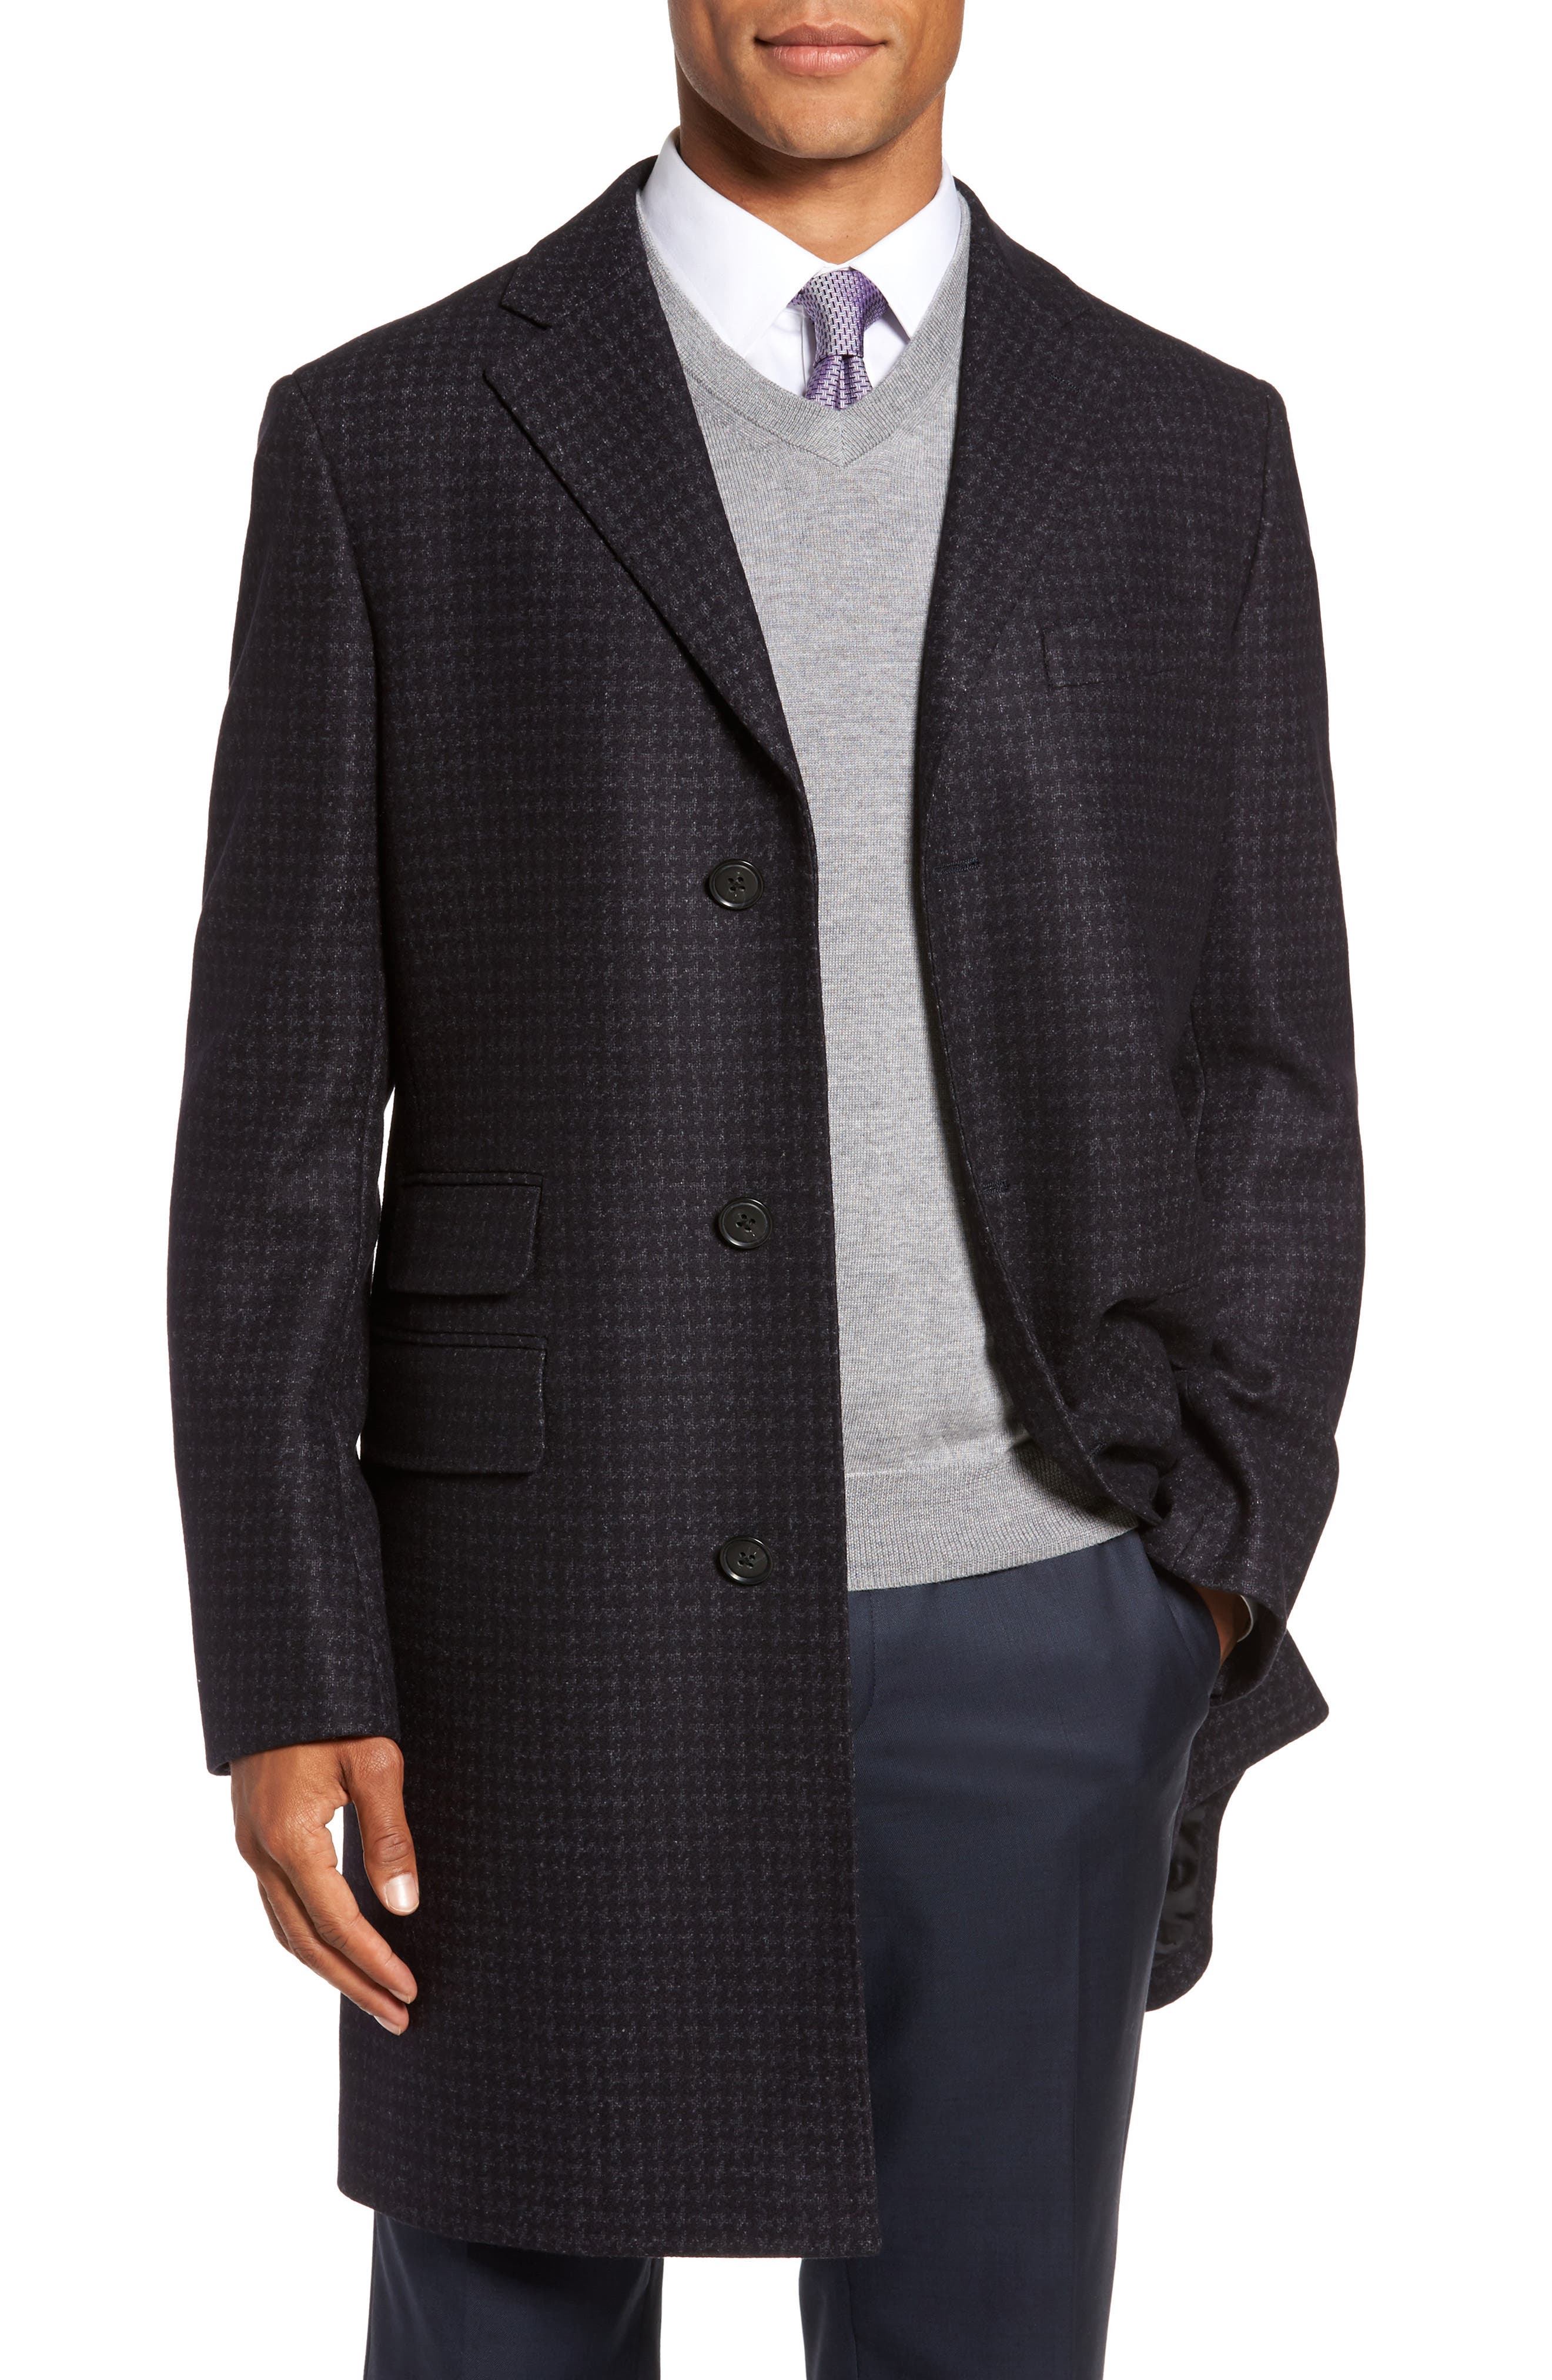 Jackson Houndstooth Wool Blend Overcoat,                             Main thumbnail 1, color,